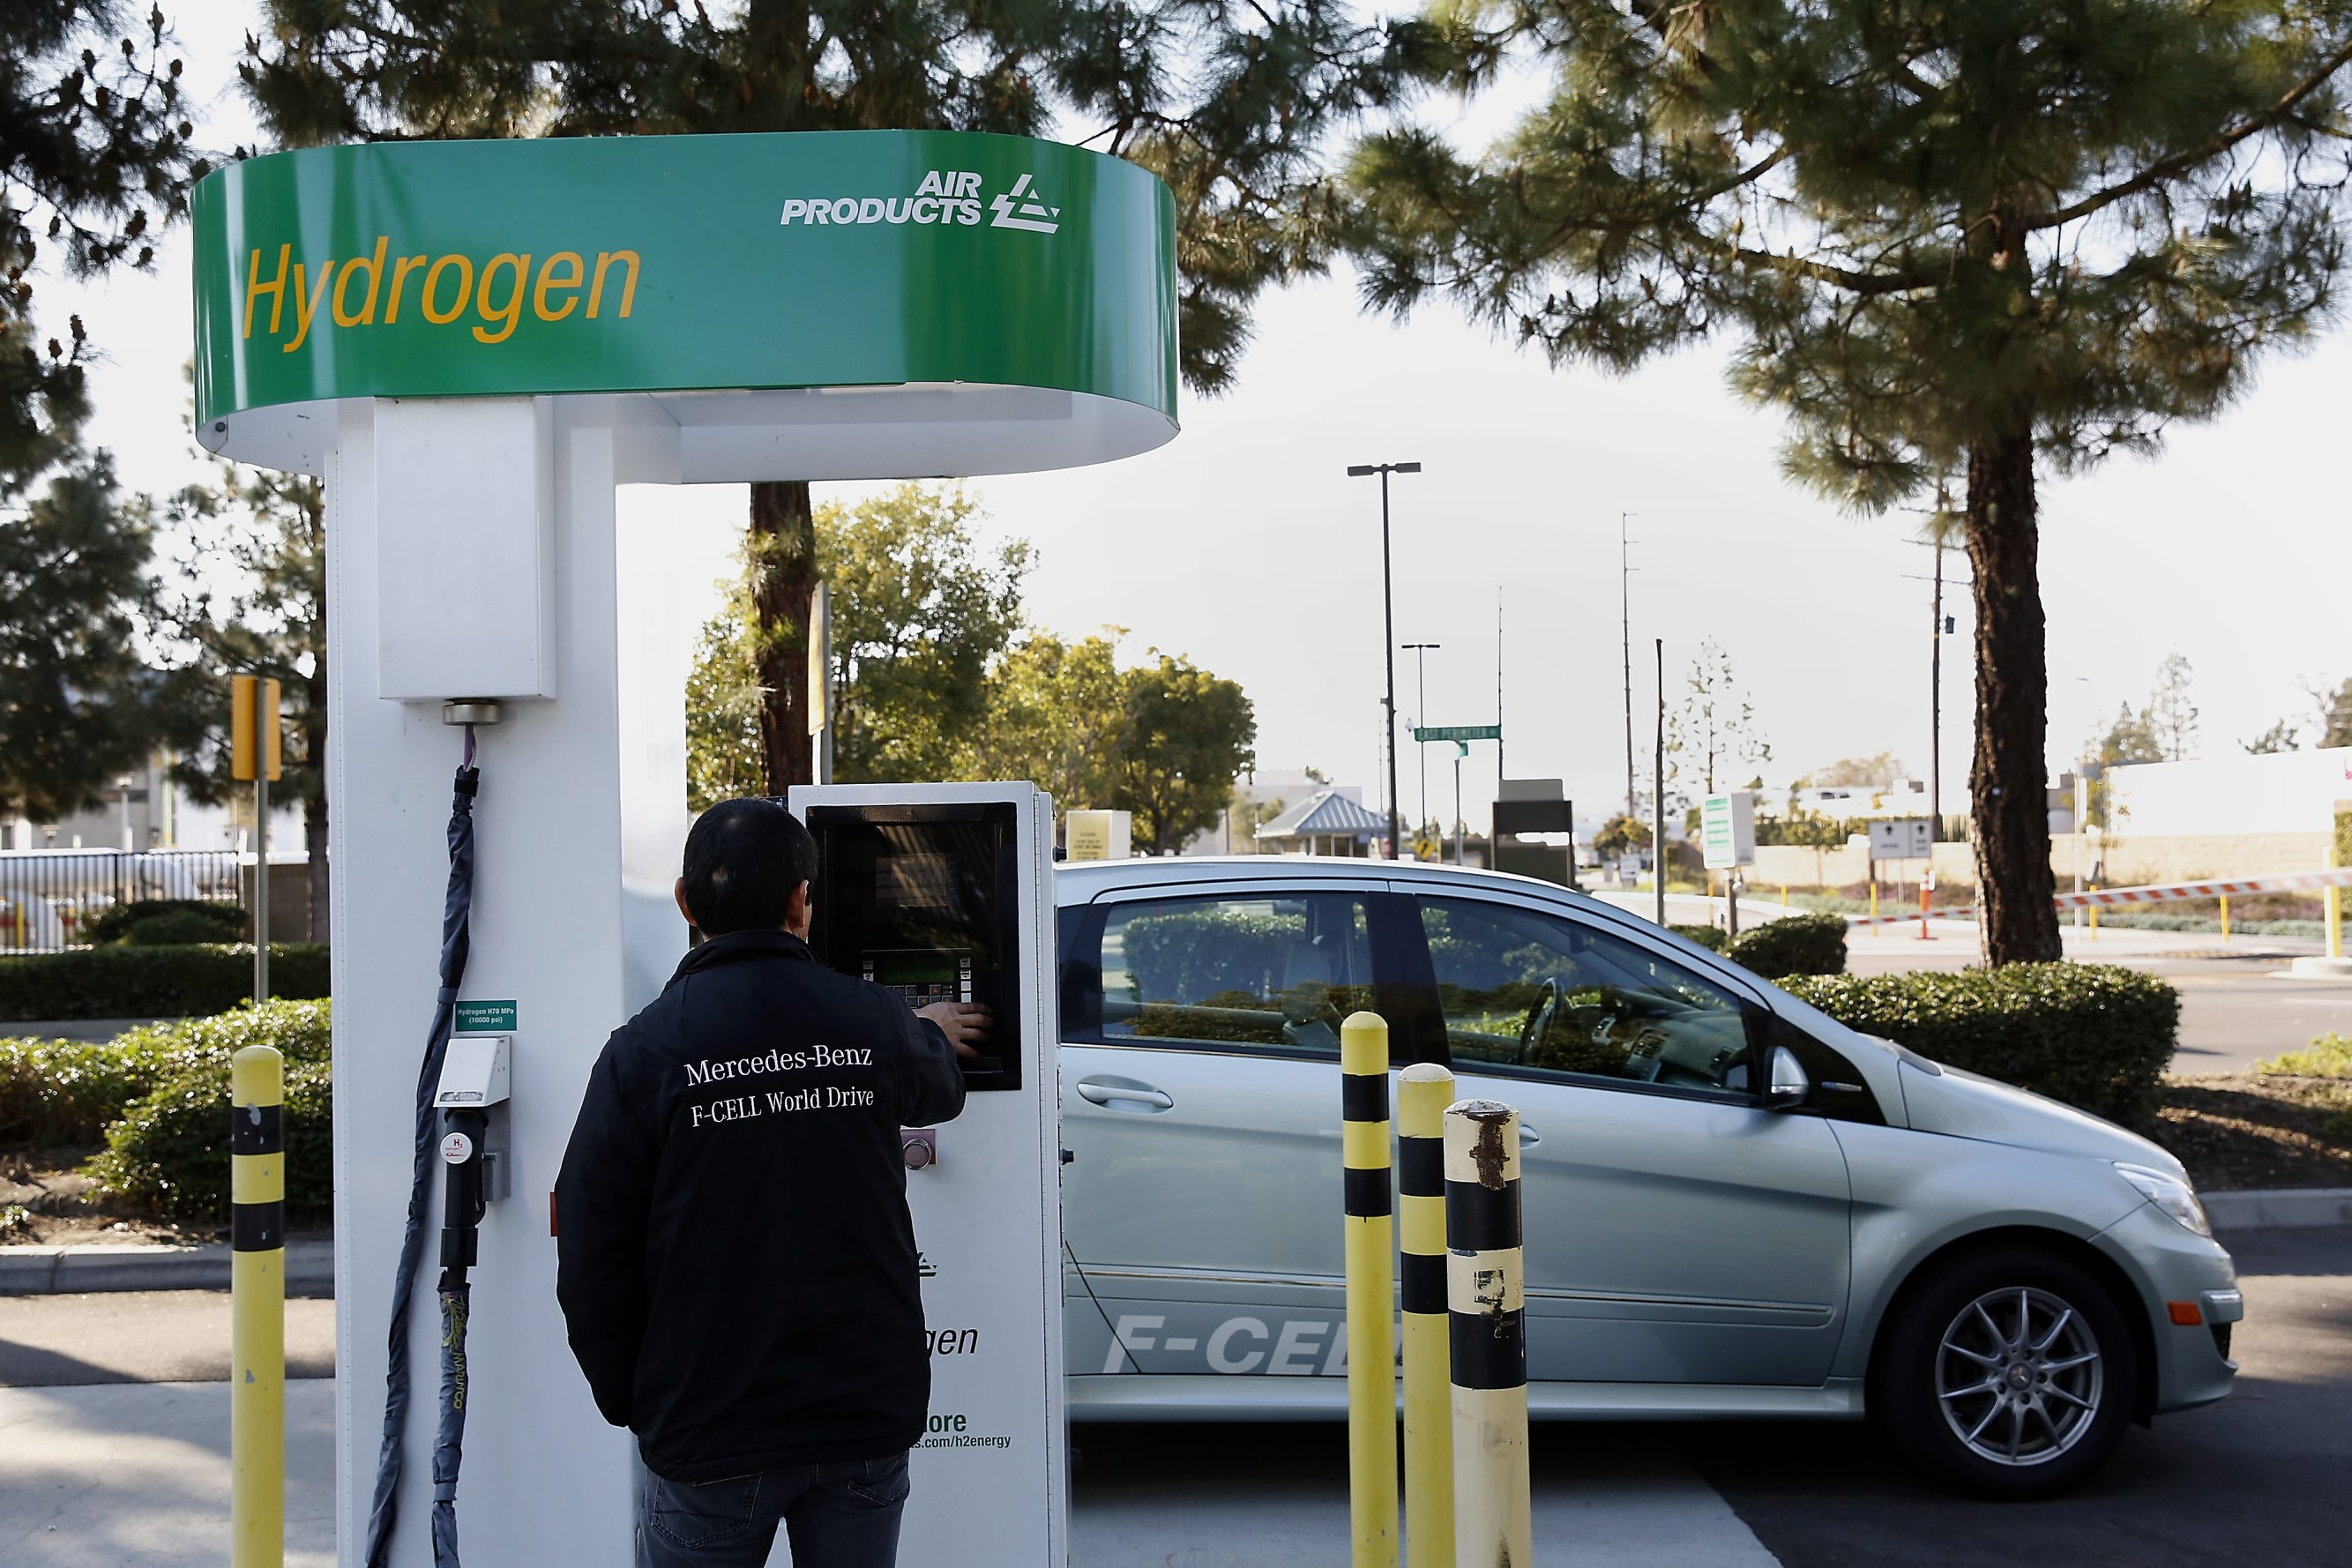 Hydrogen gas made in a process that starts with waste is piped to pumps where fuel-cell autos are refueled daily.